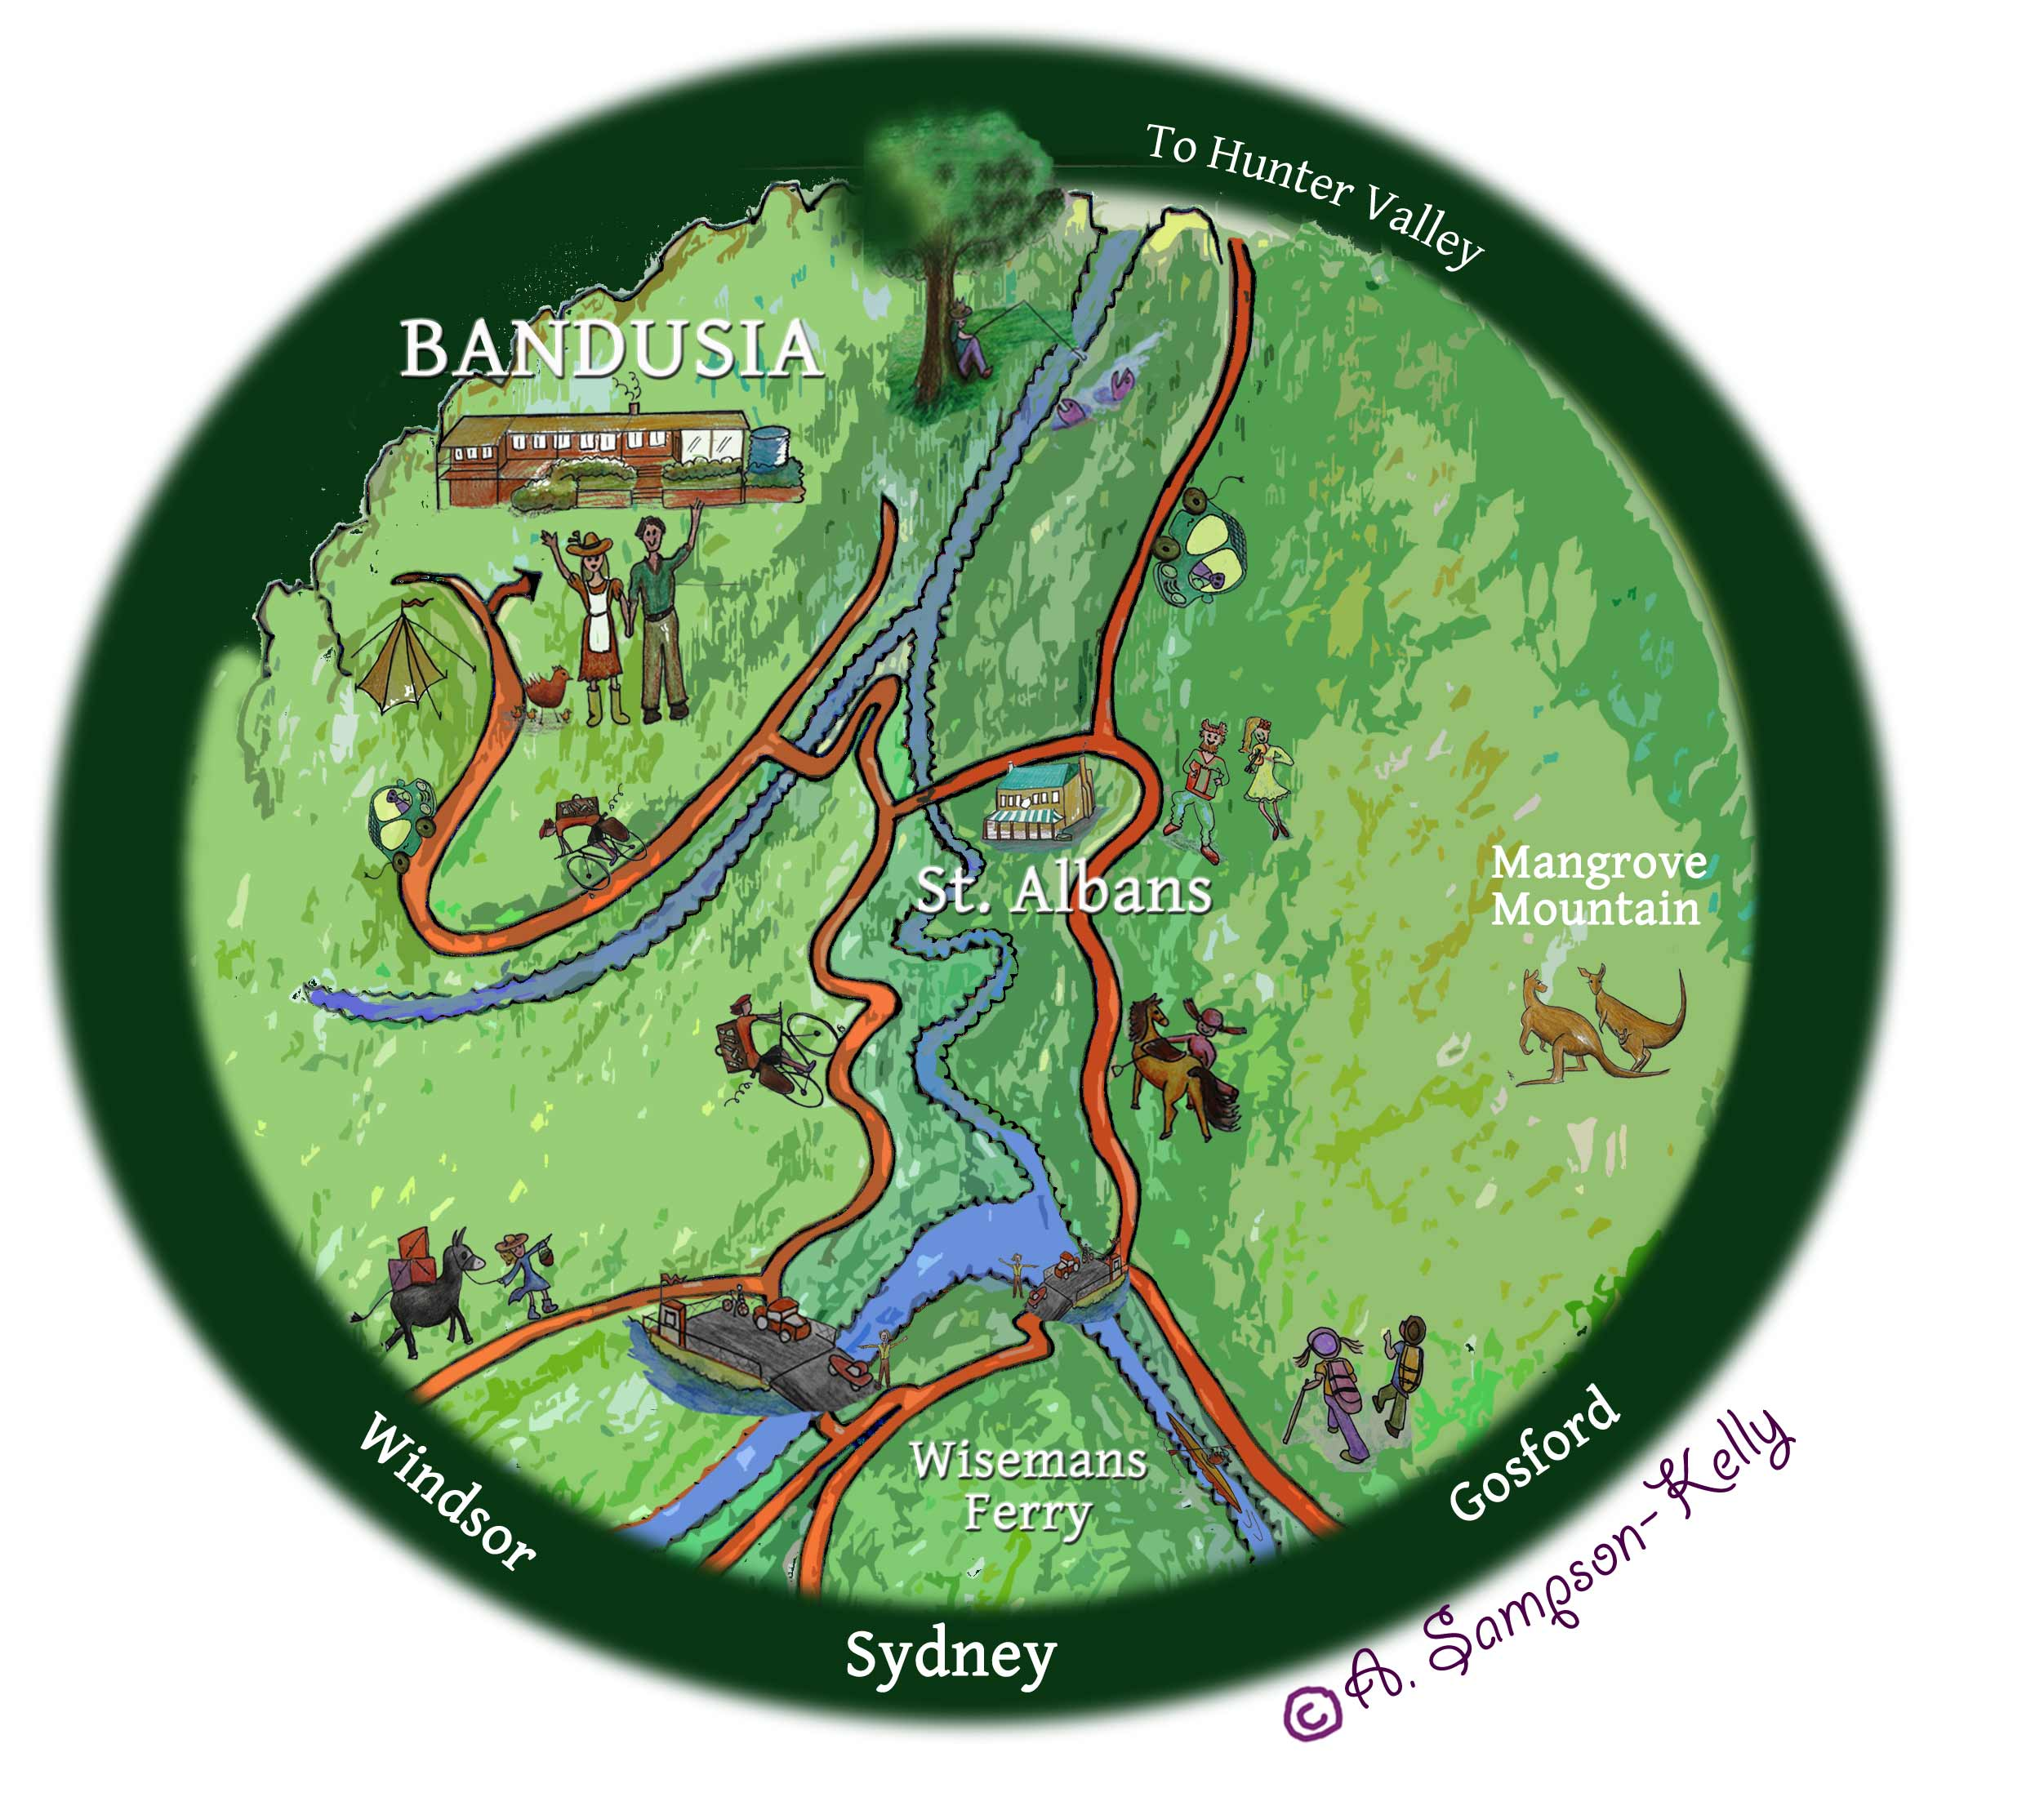 Bandusia - how to get there